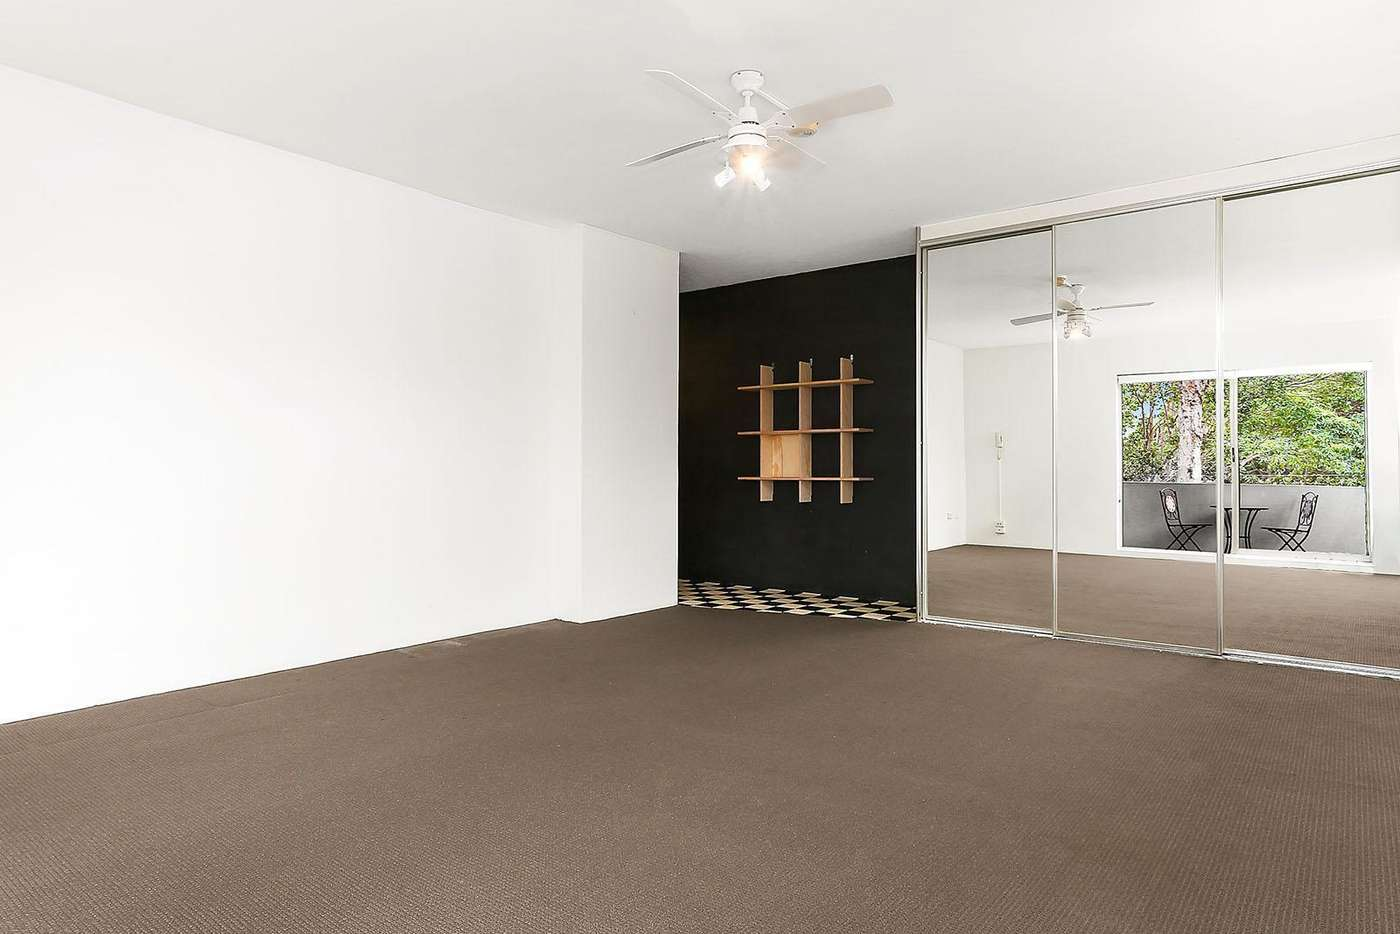 Main view of Homely studio listing, 25/95 Annandale Street, Annandale NSW 2038